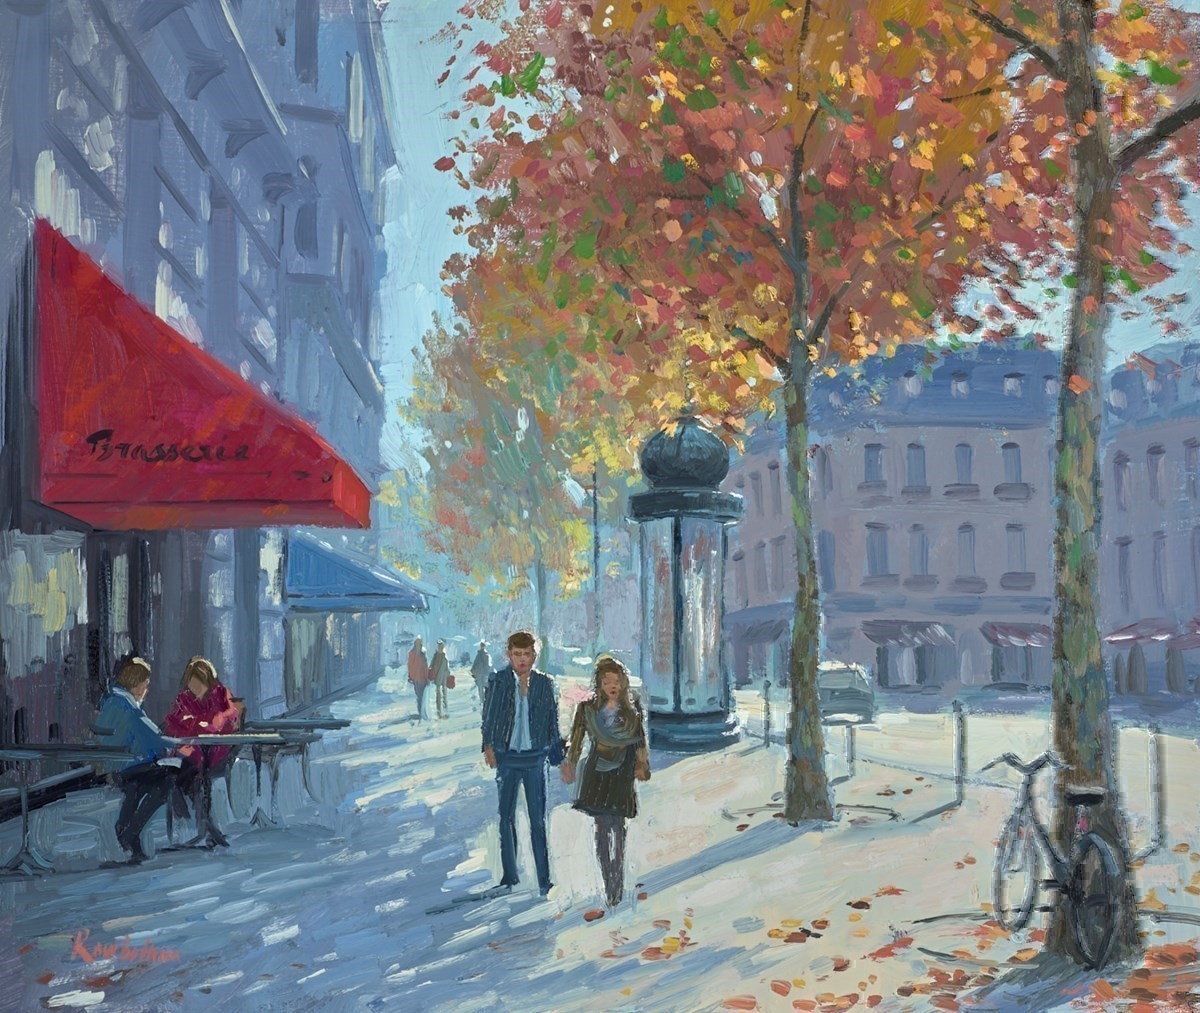 Cafe Saint Germain by Charles Rowbotham -  sized 15x12 inches. Available from Whitewall Galleries